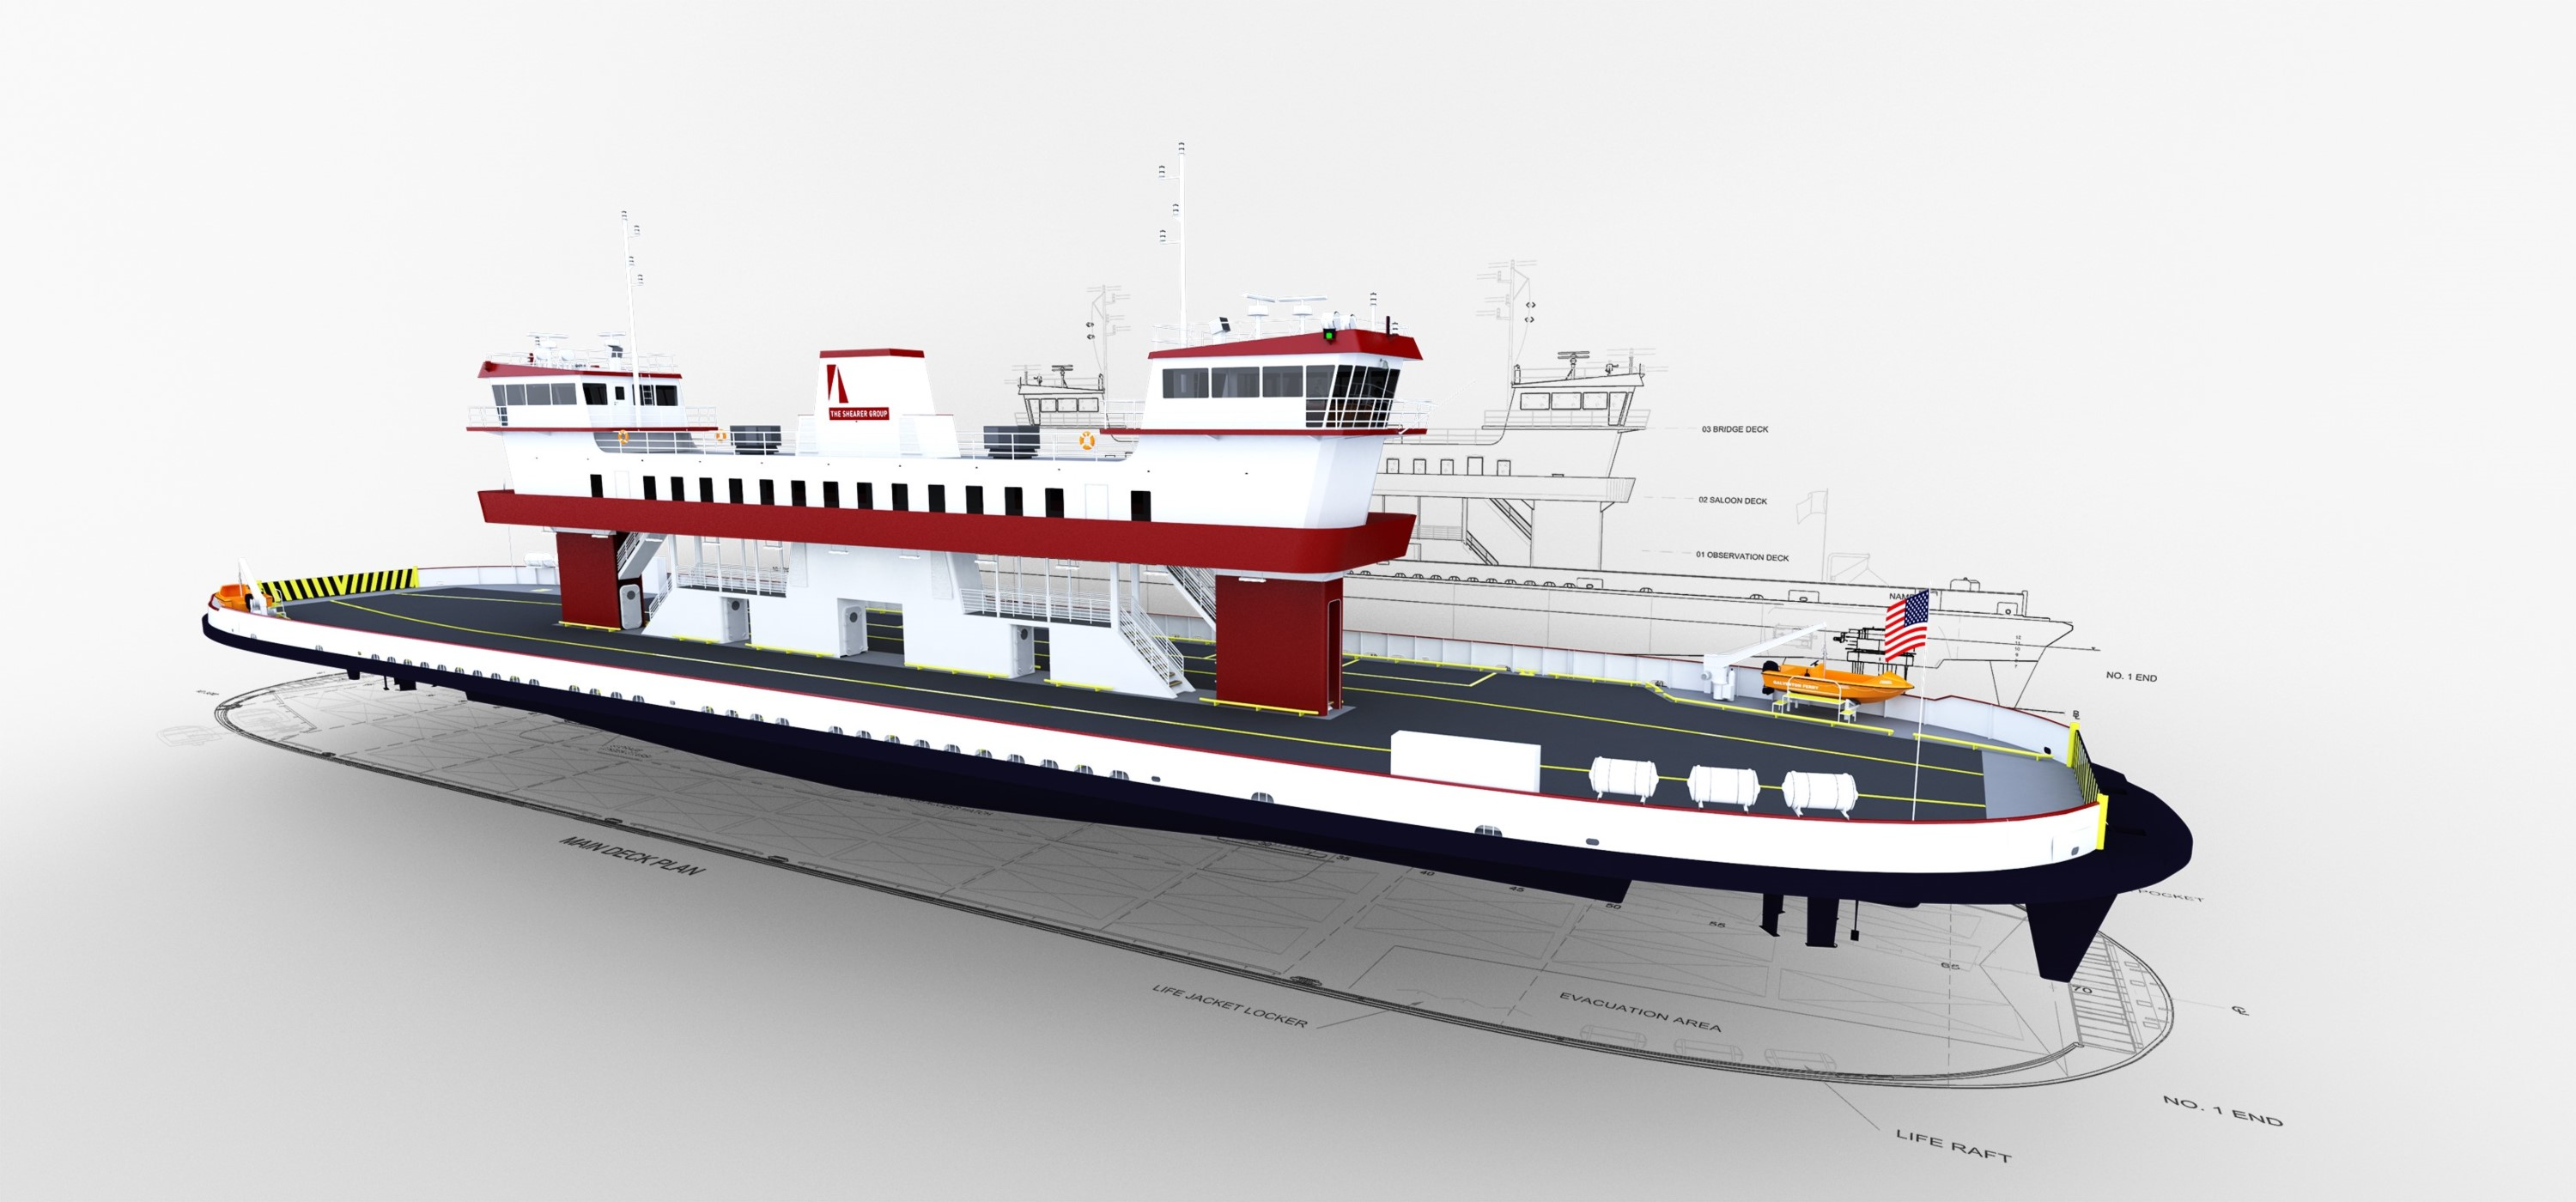 Vehicle transport ferry - Commercial vessel design